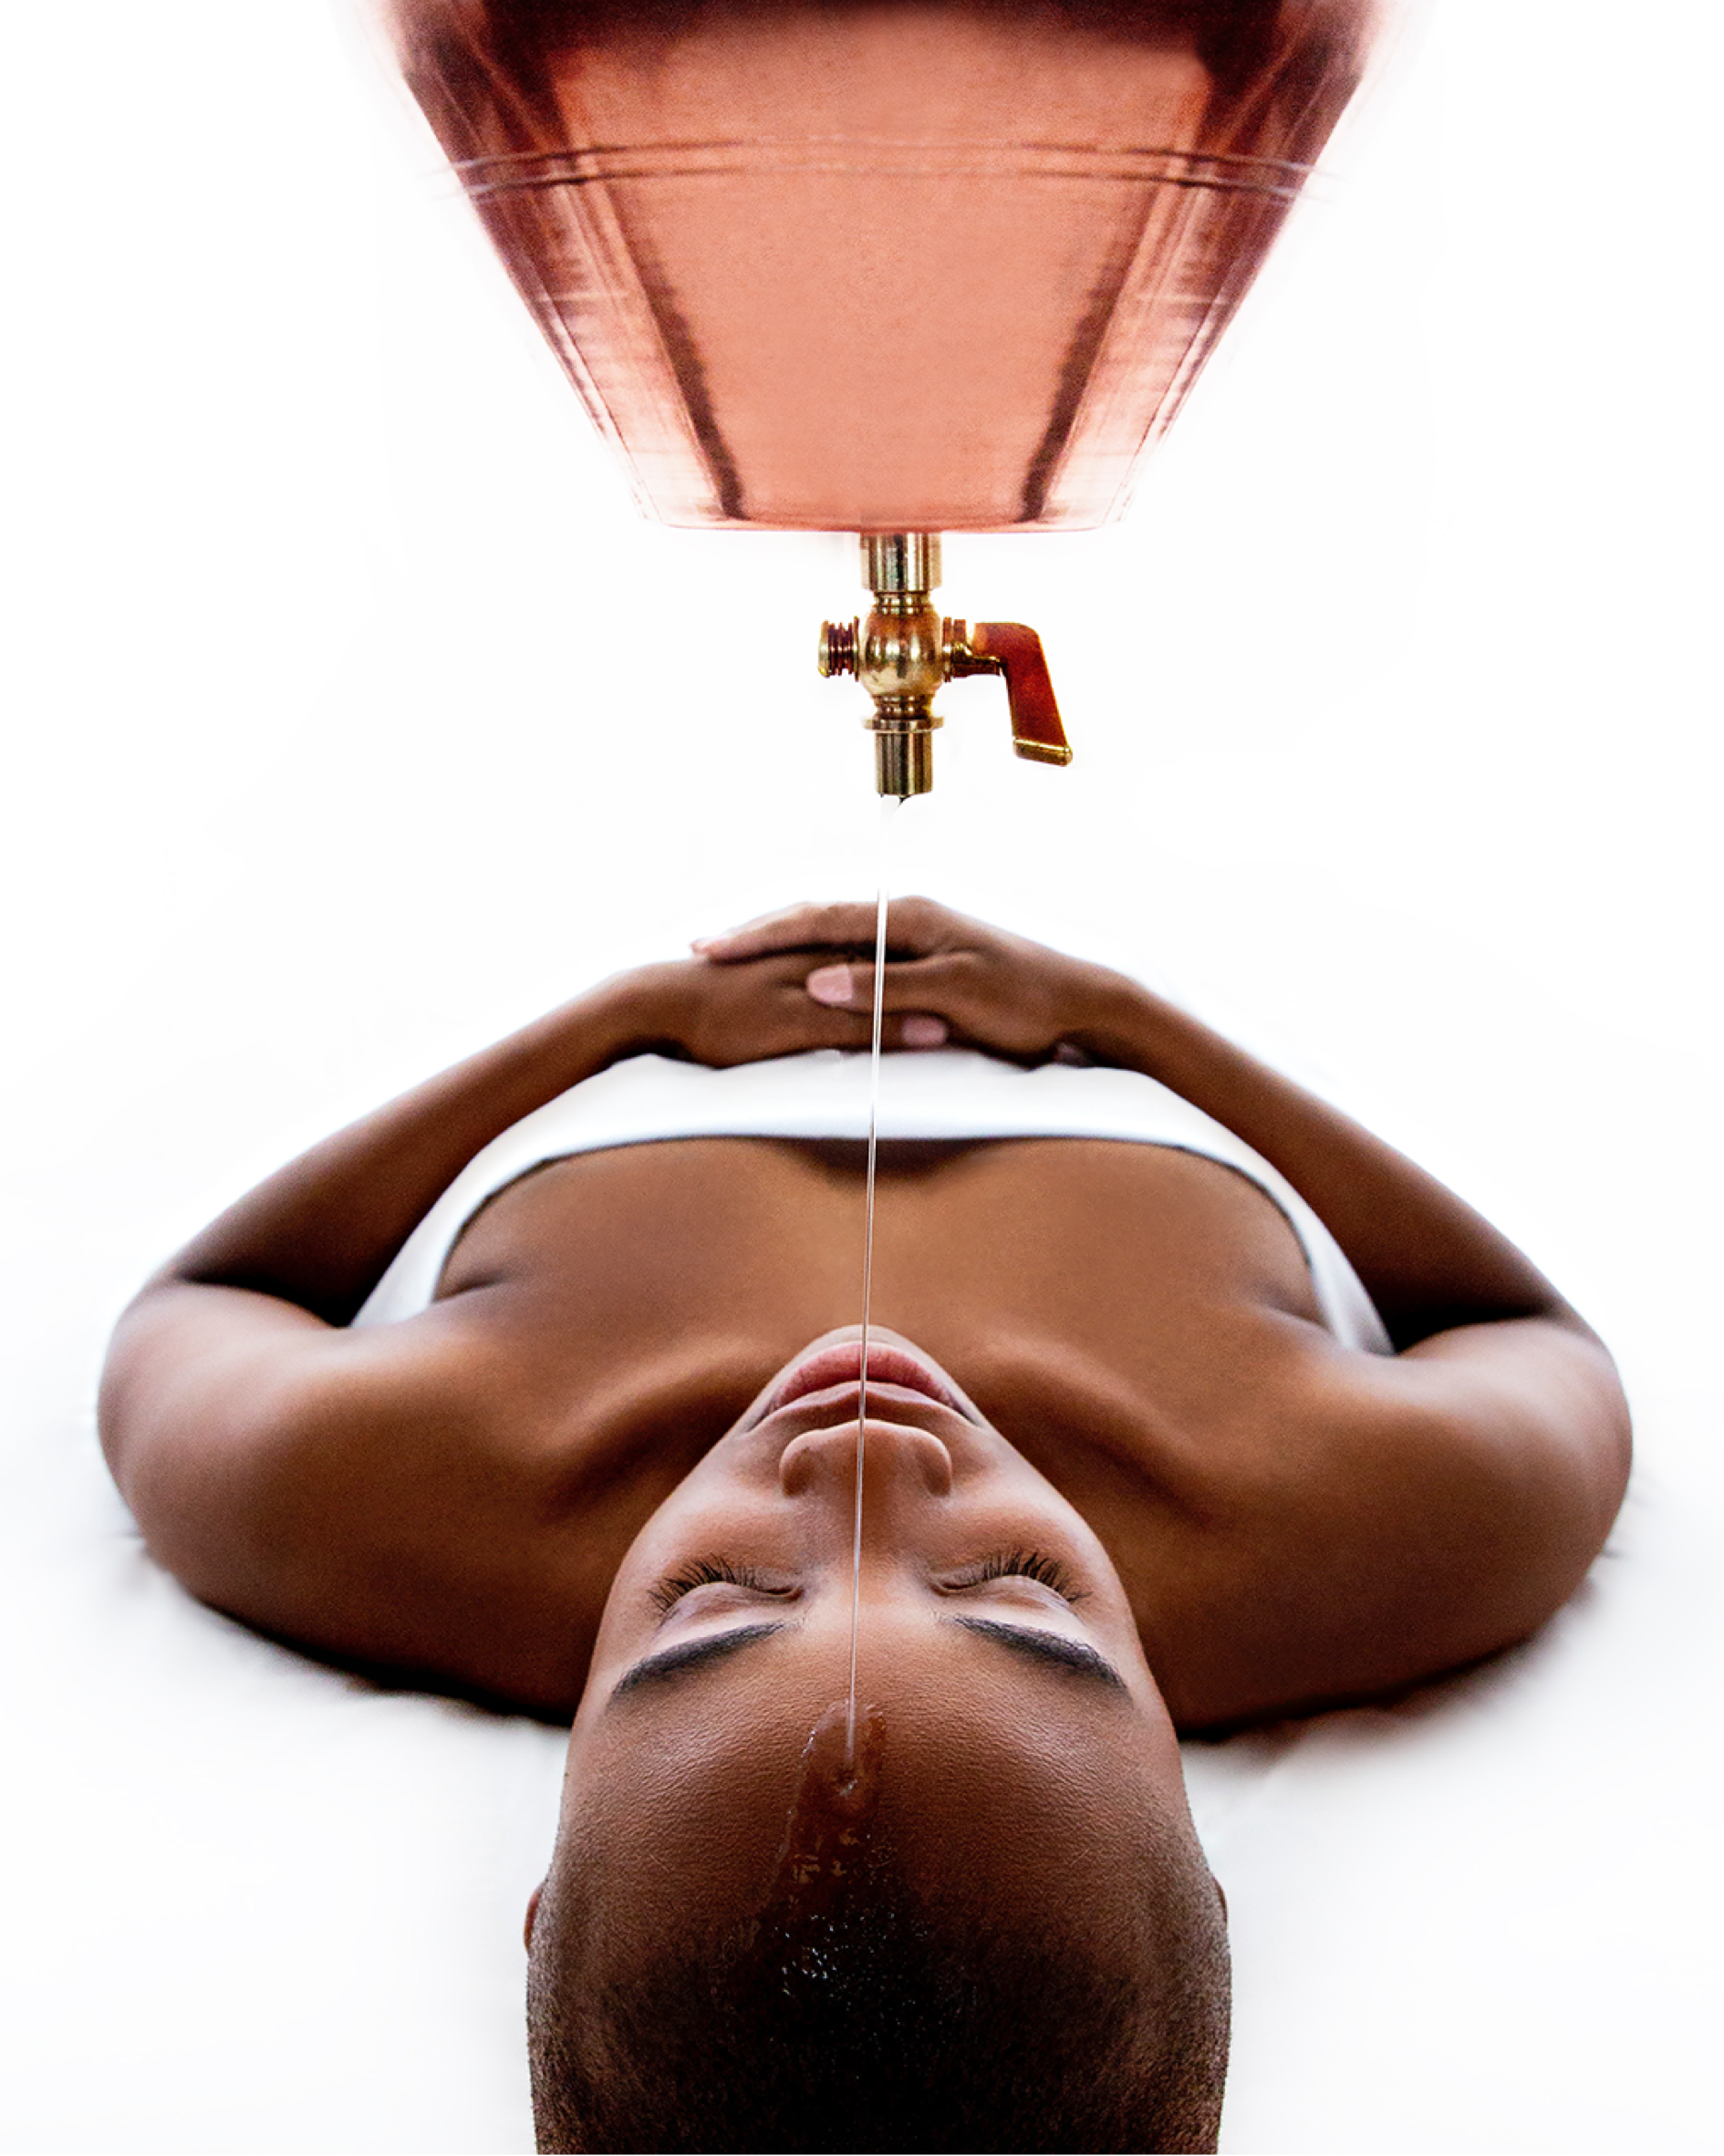 a woman laying down on her back facing toward a nozzle that is slowly dripping oil on her forehead. She is wrapped in a white towel.